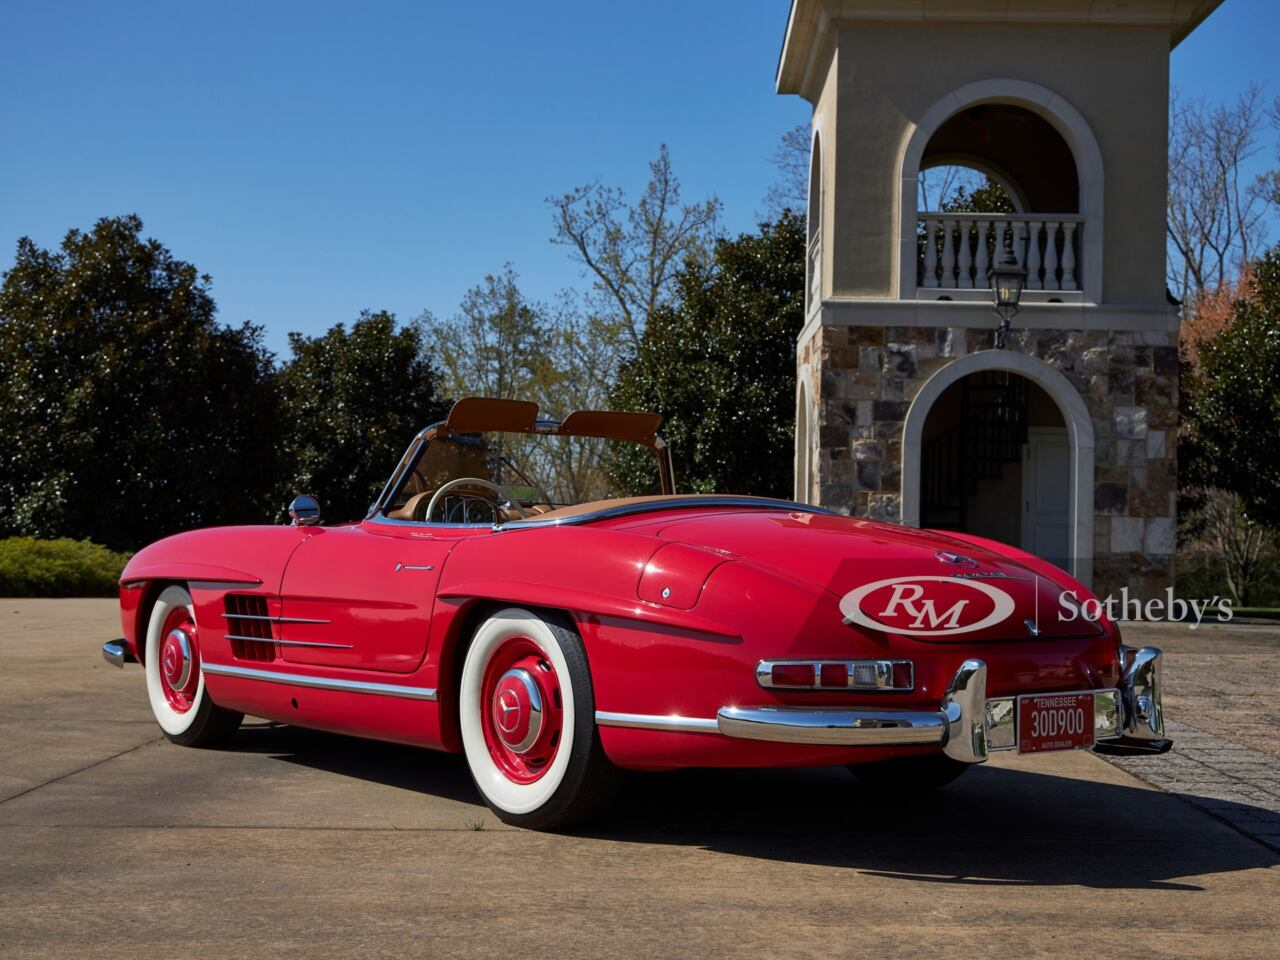 Mercedes-Benz 300 SL Roadster 1958 asta